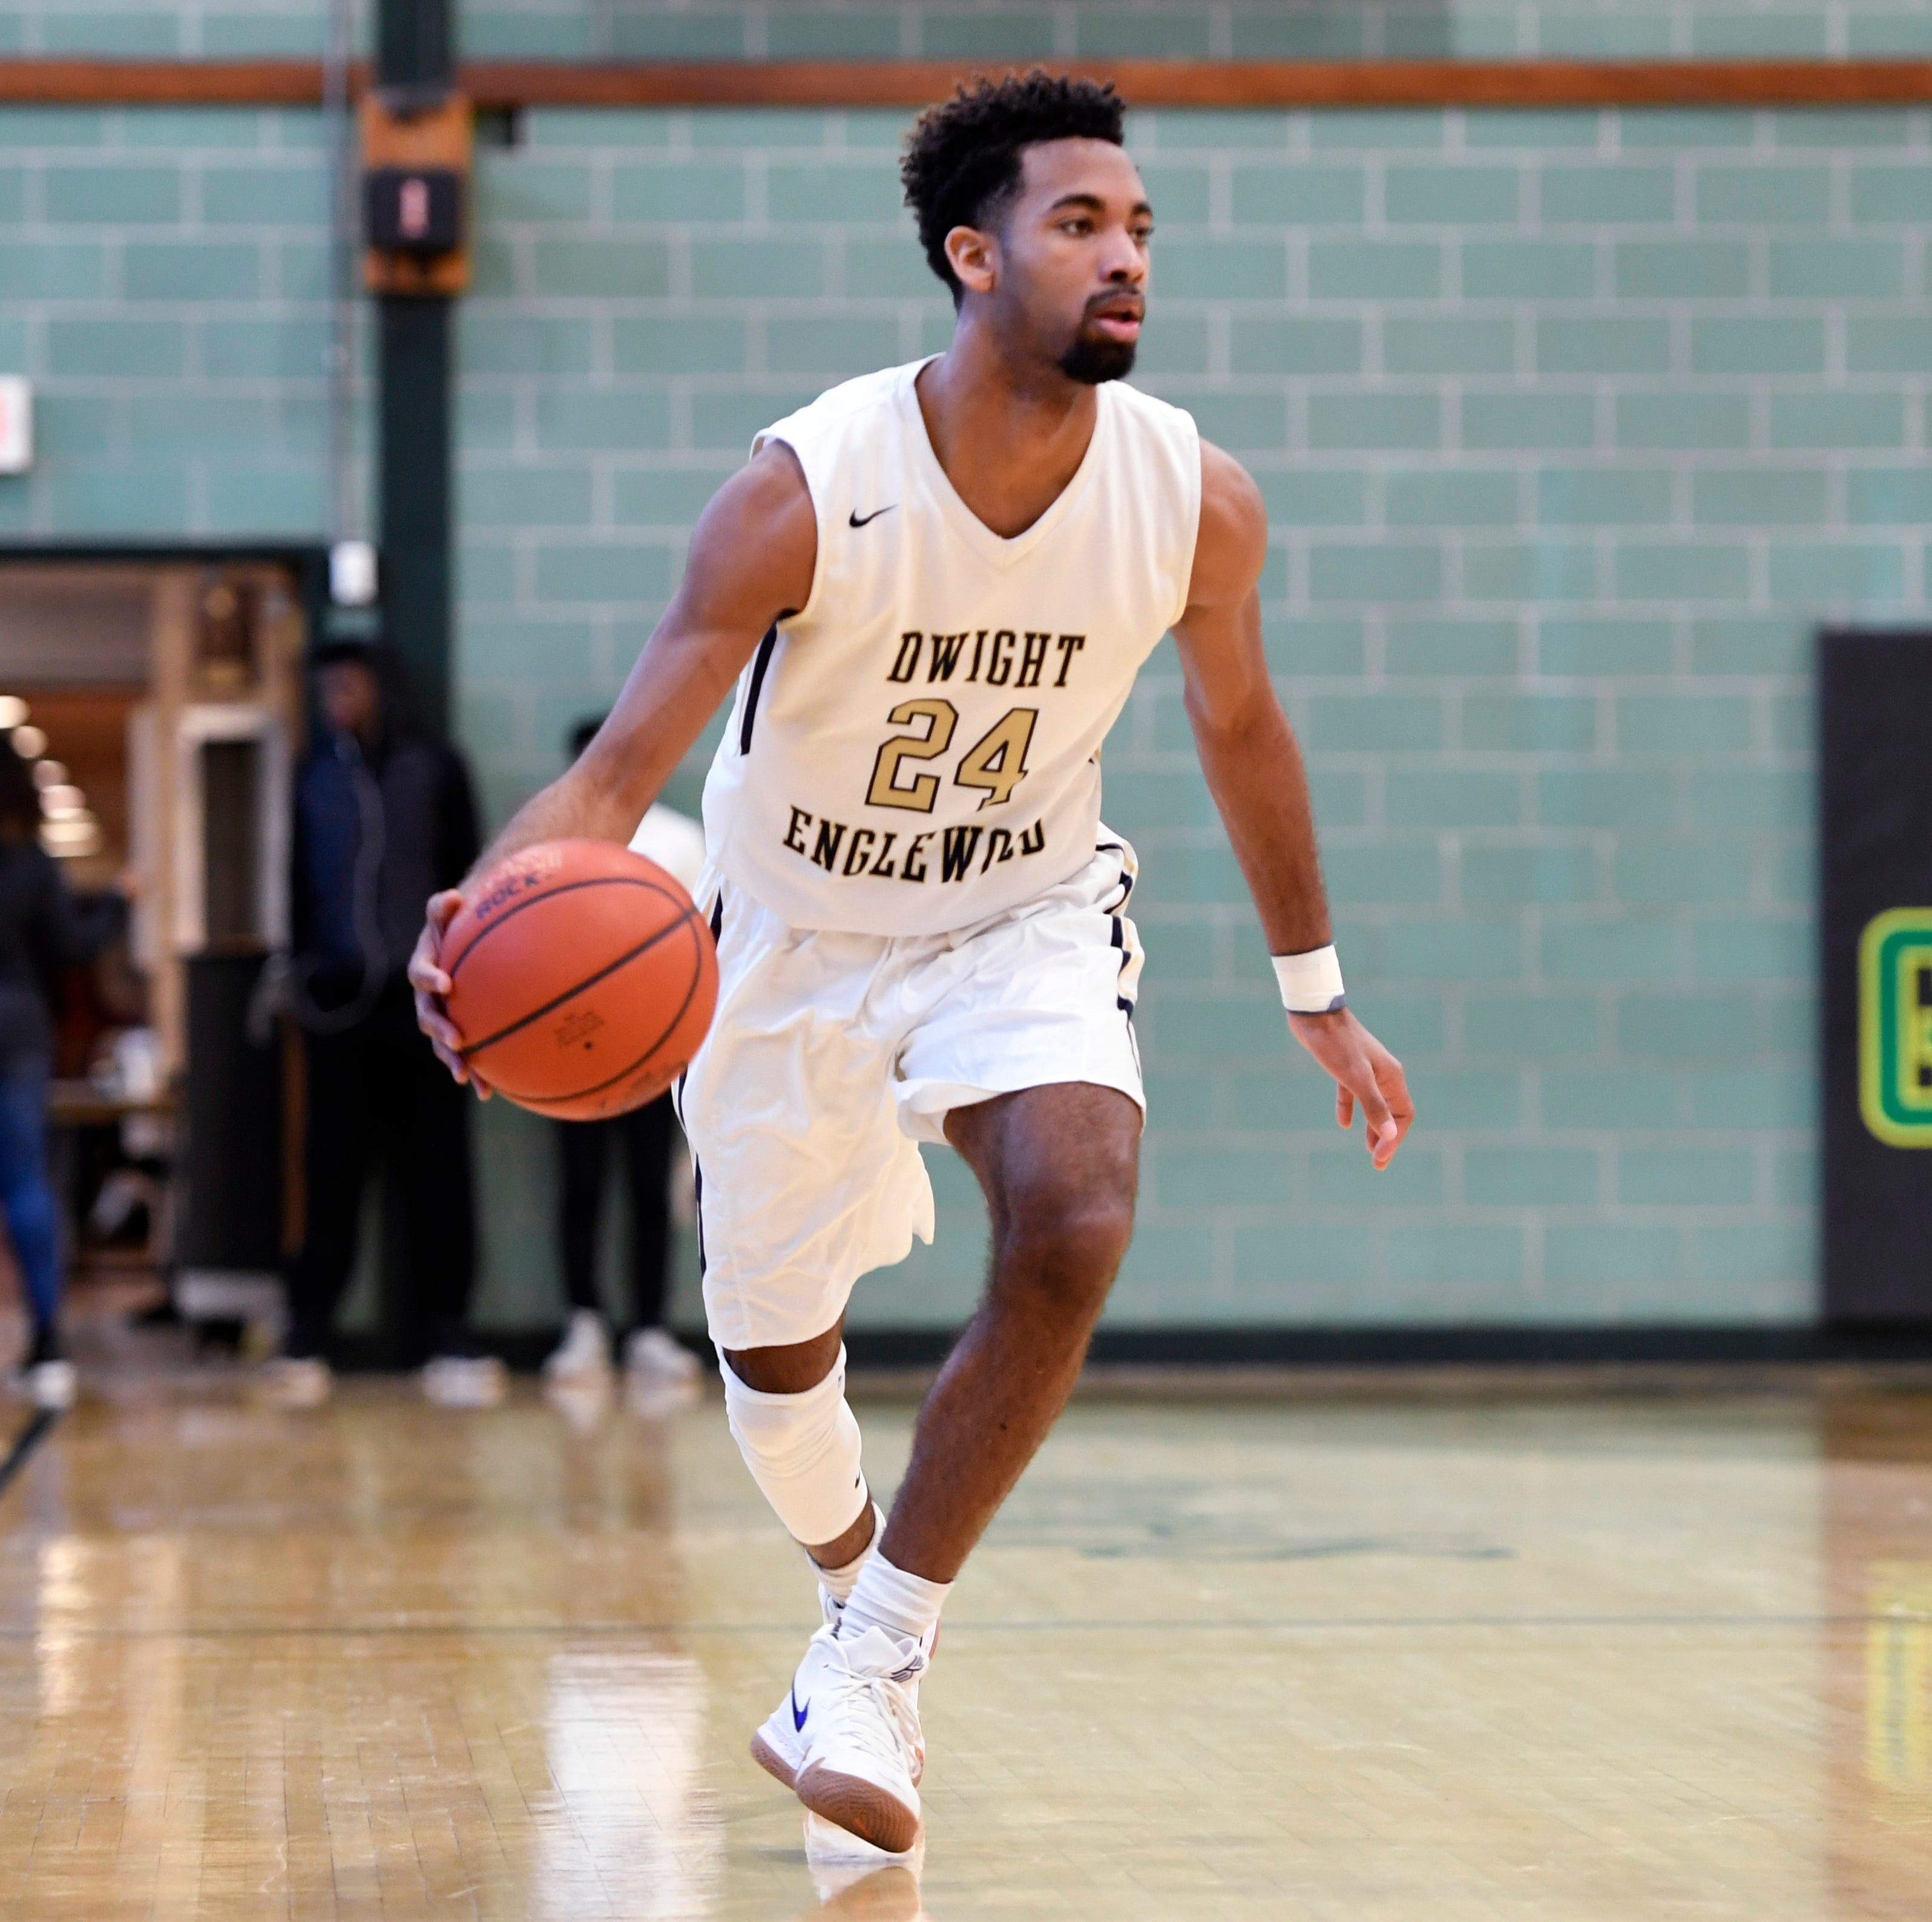 Vote for the North Jersey Player of the Week for Jan. 13-19